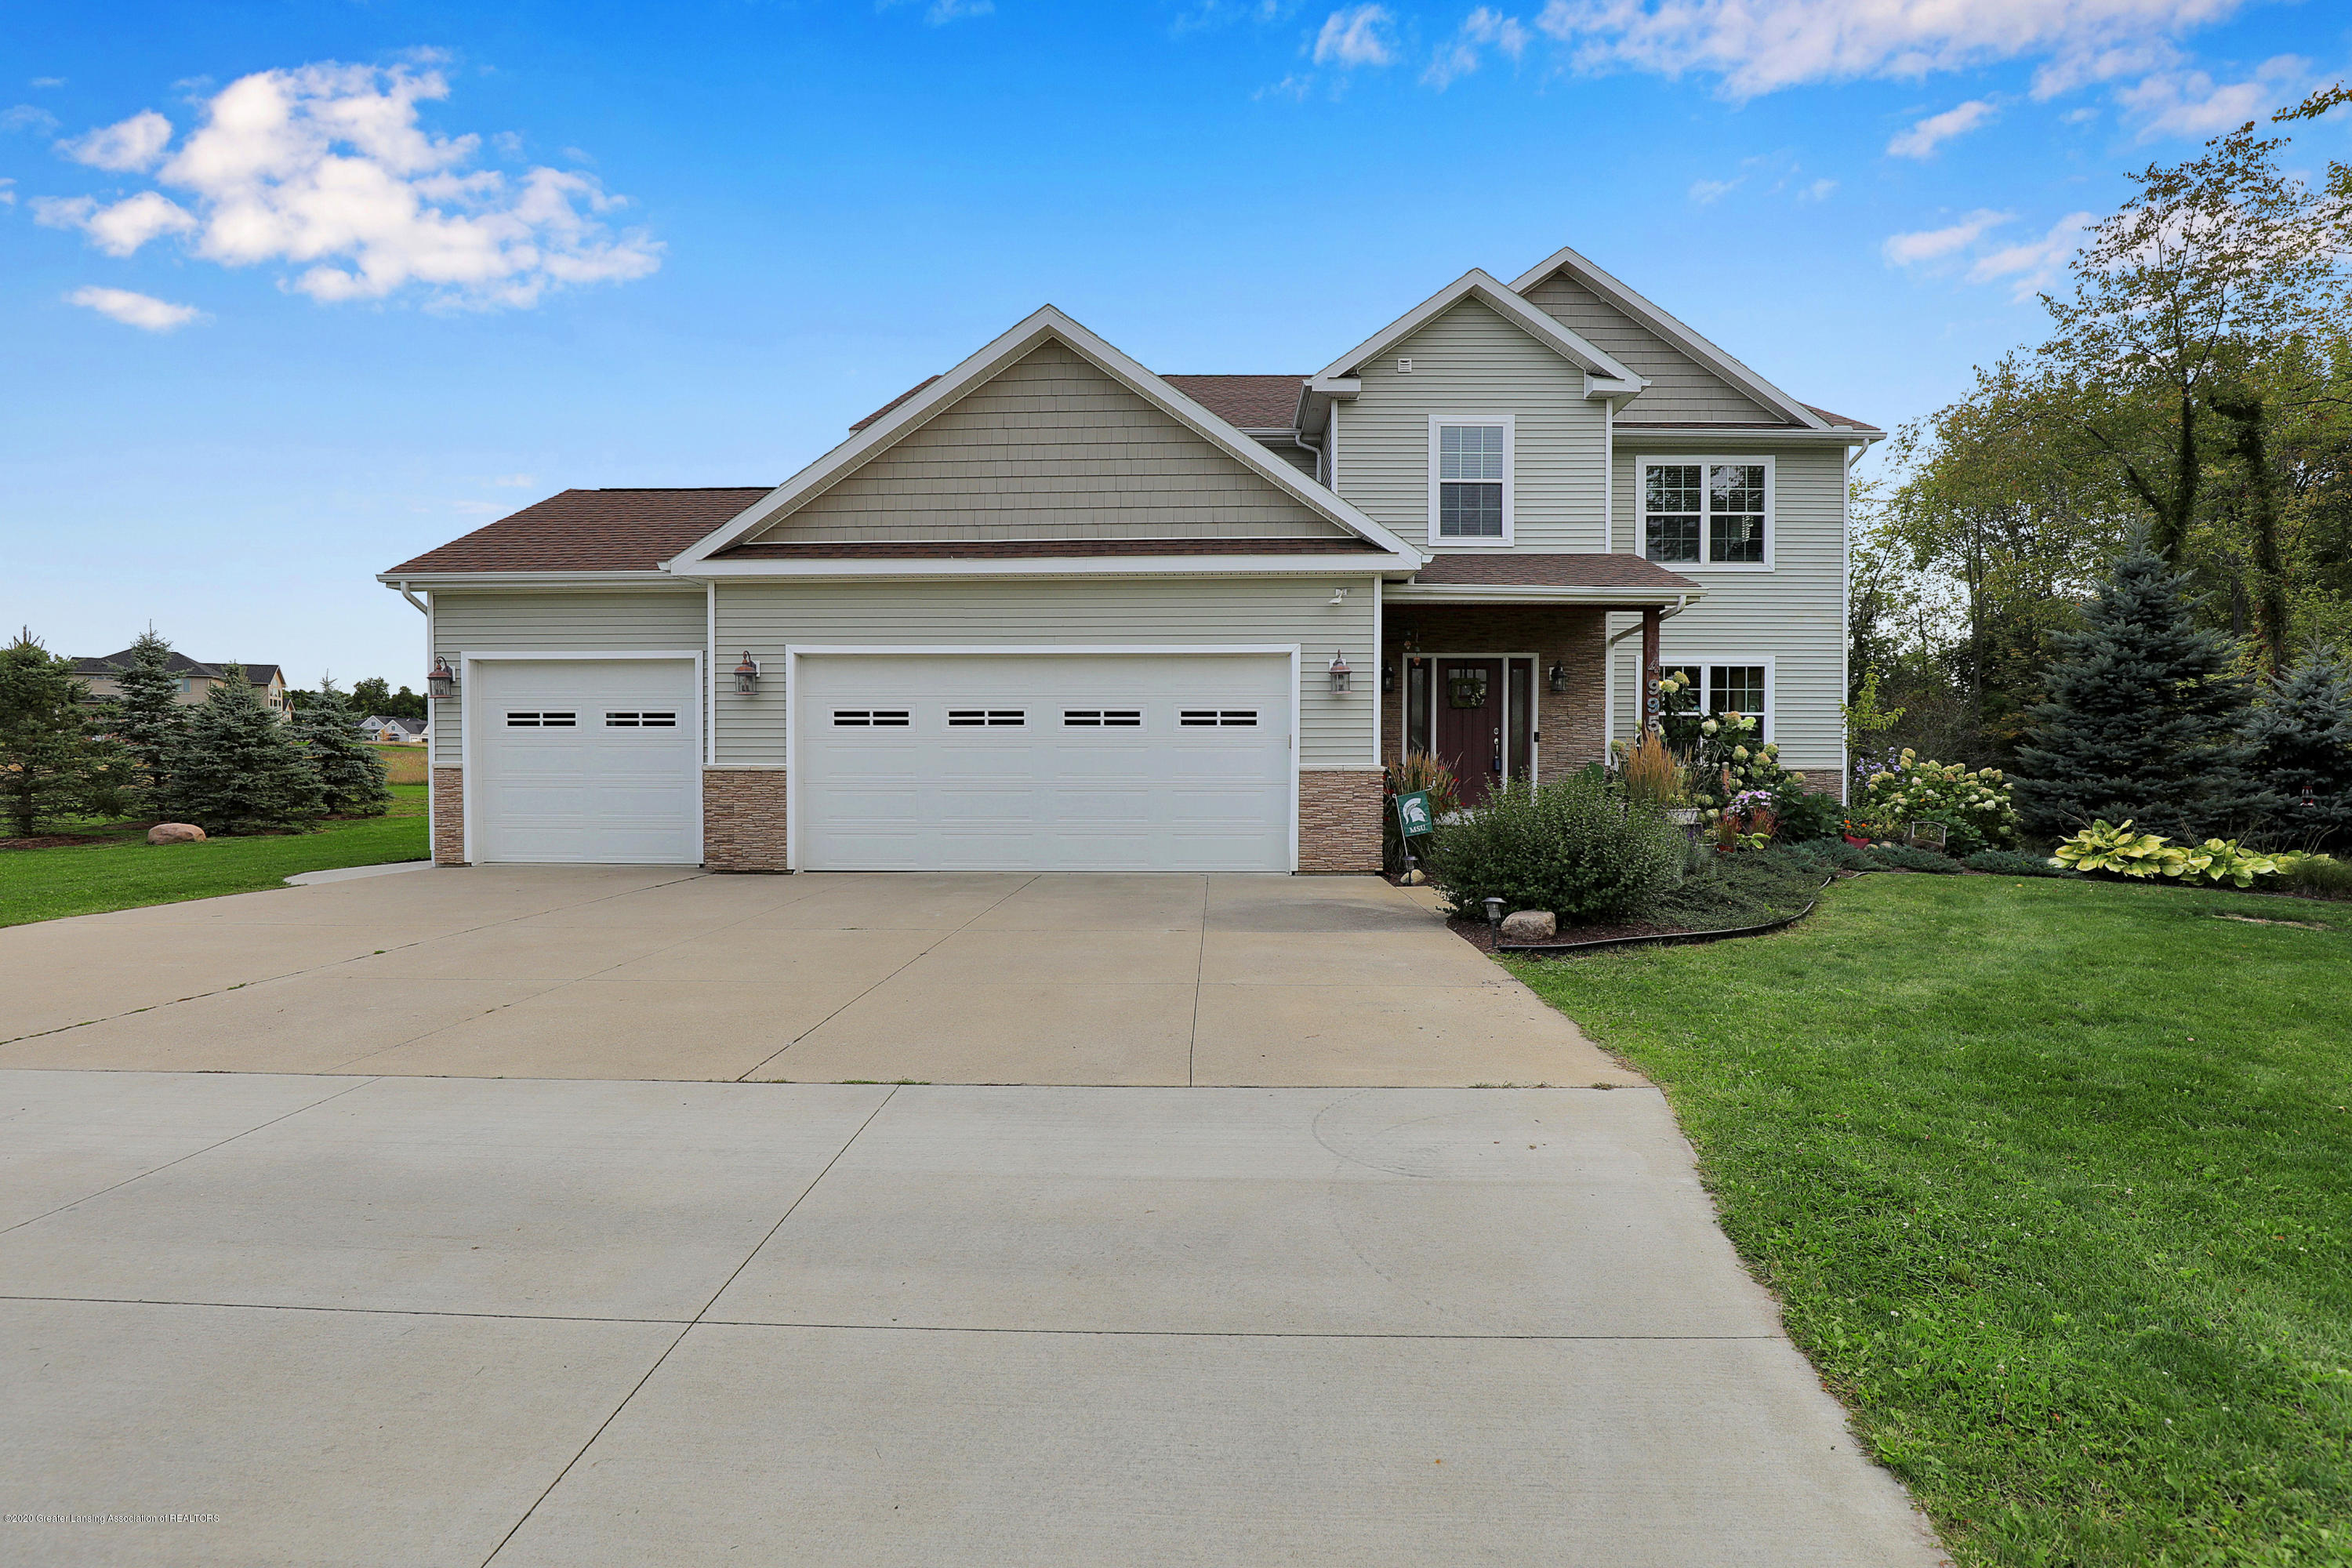 4995 W Howe Rd - 9I3A3761 - 2